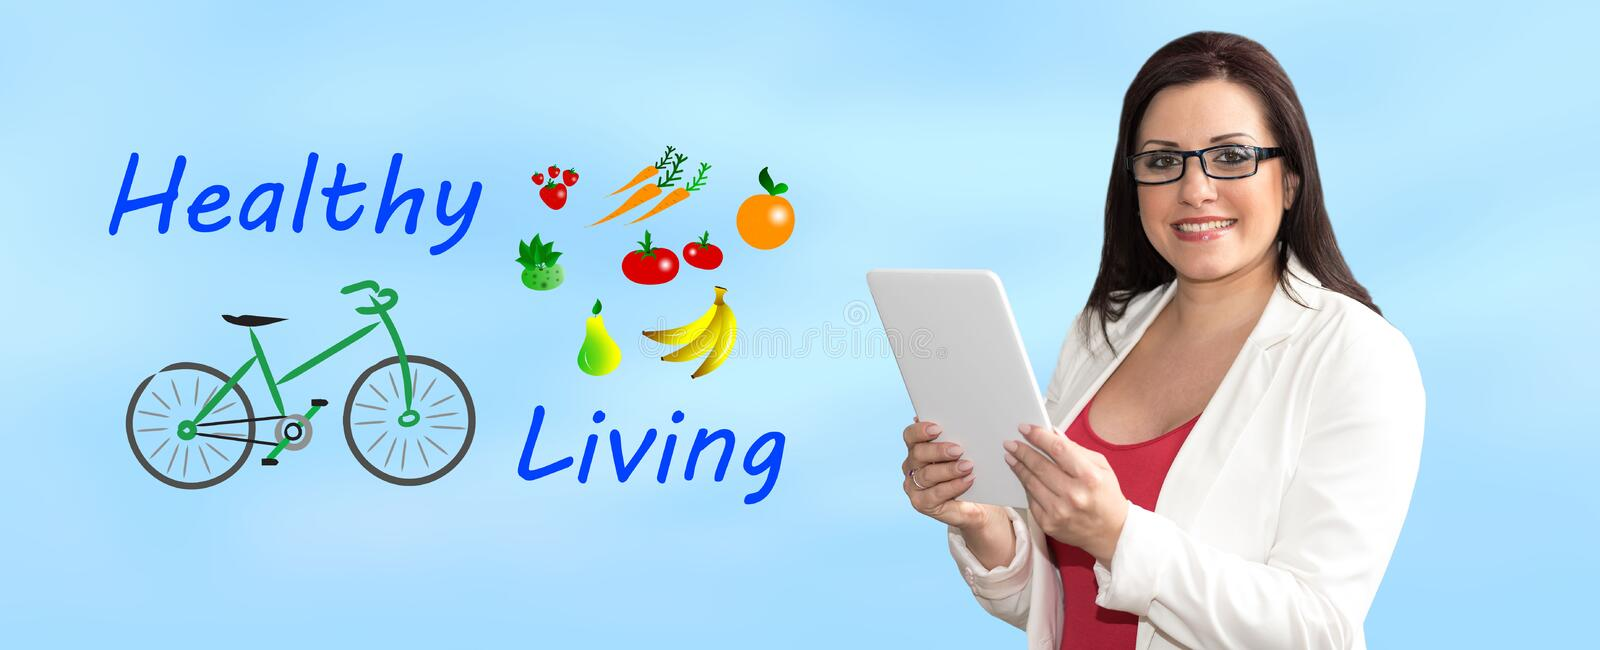 Concept of healthy living. Woman using digital tablet with healthy living concept on background royalty free stock image